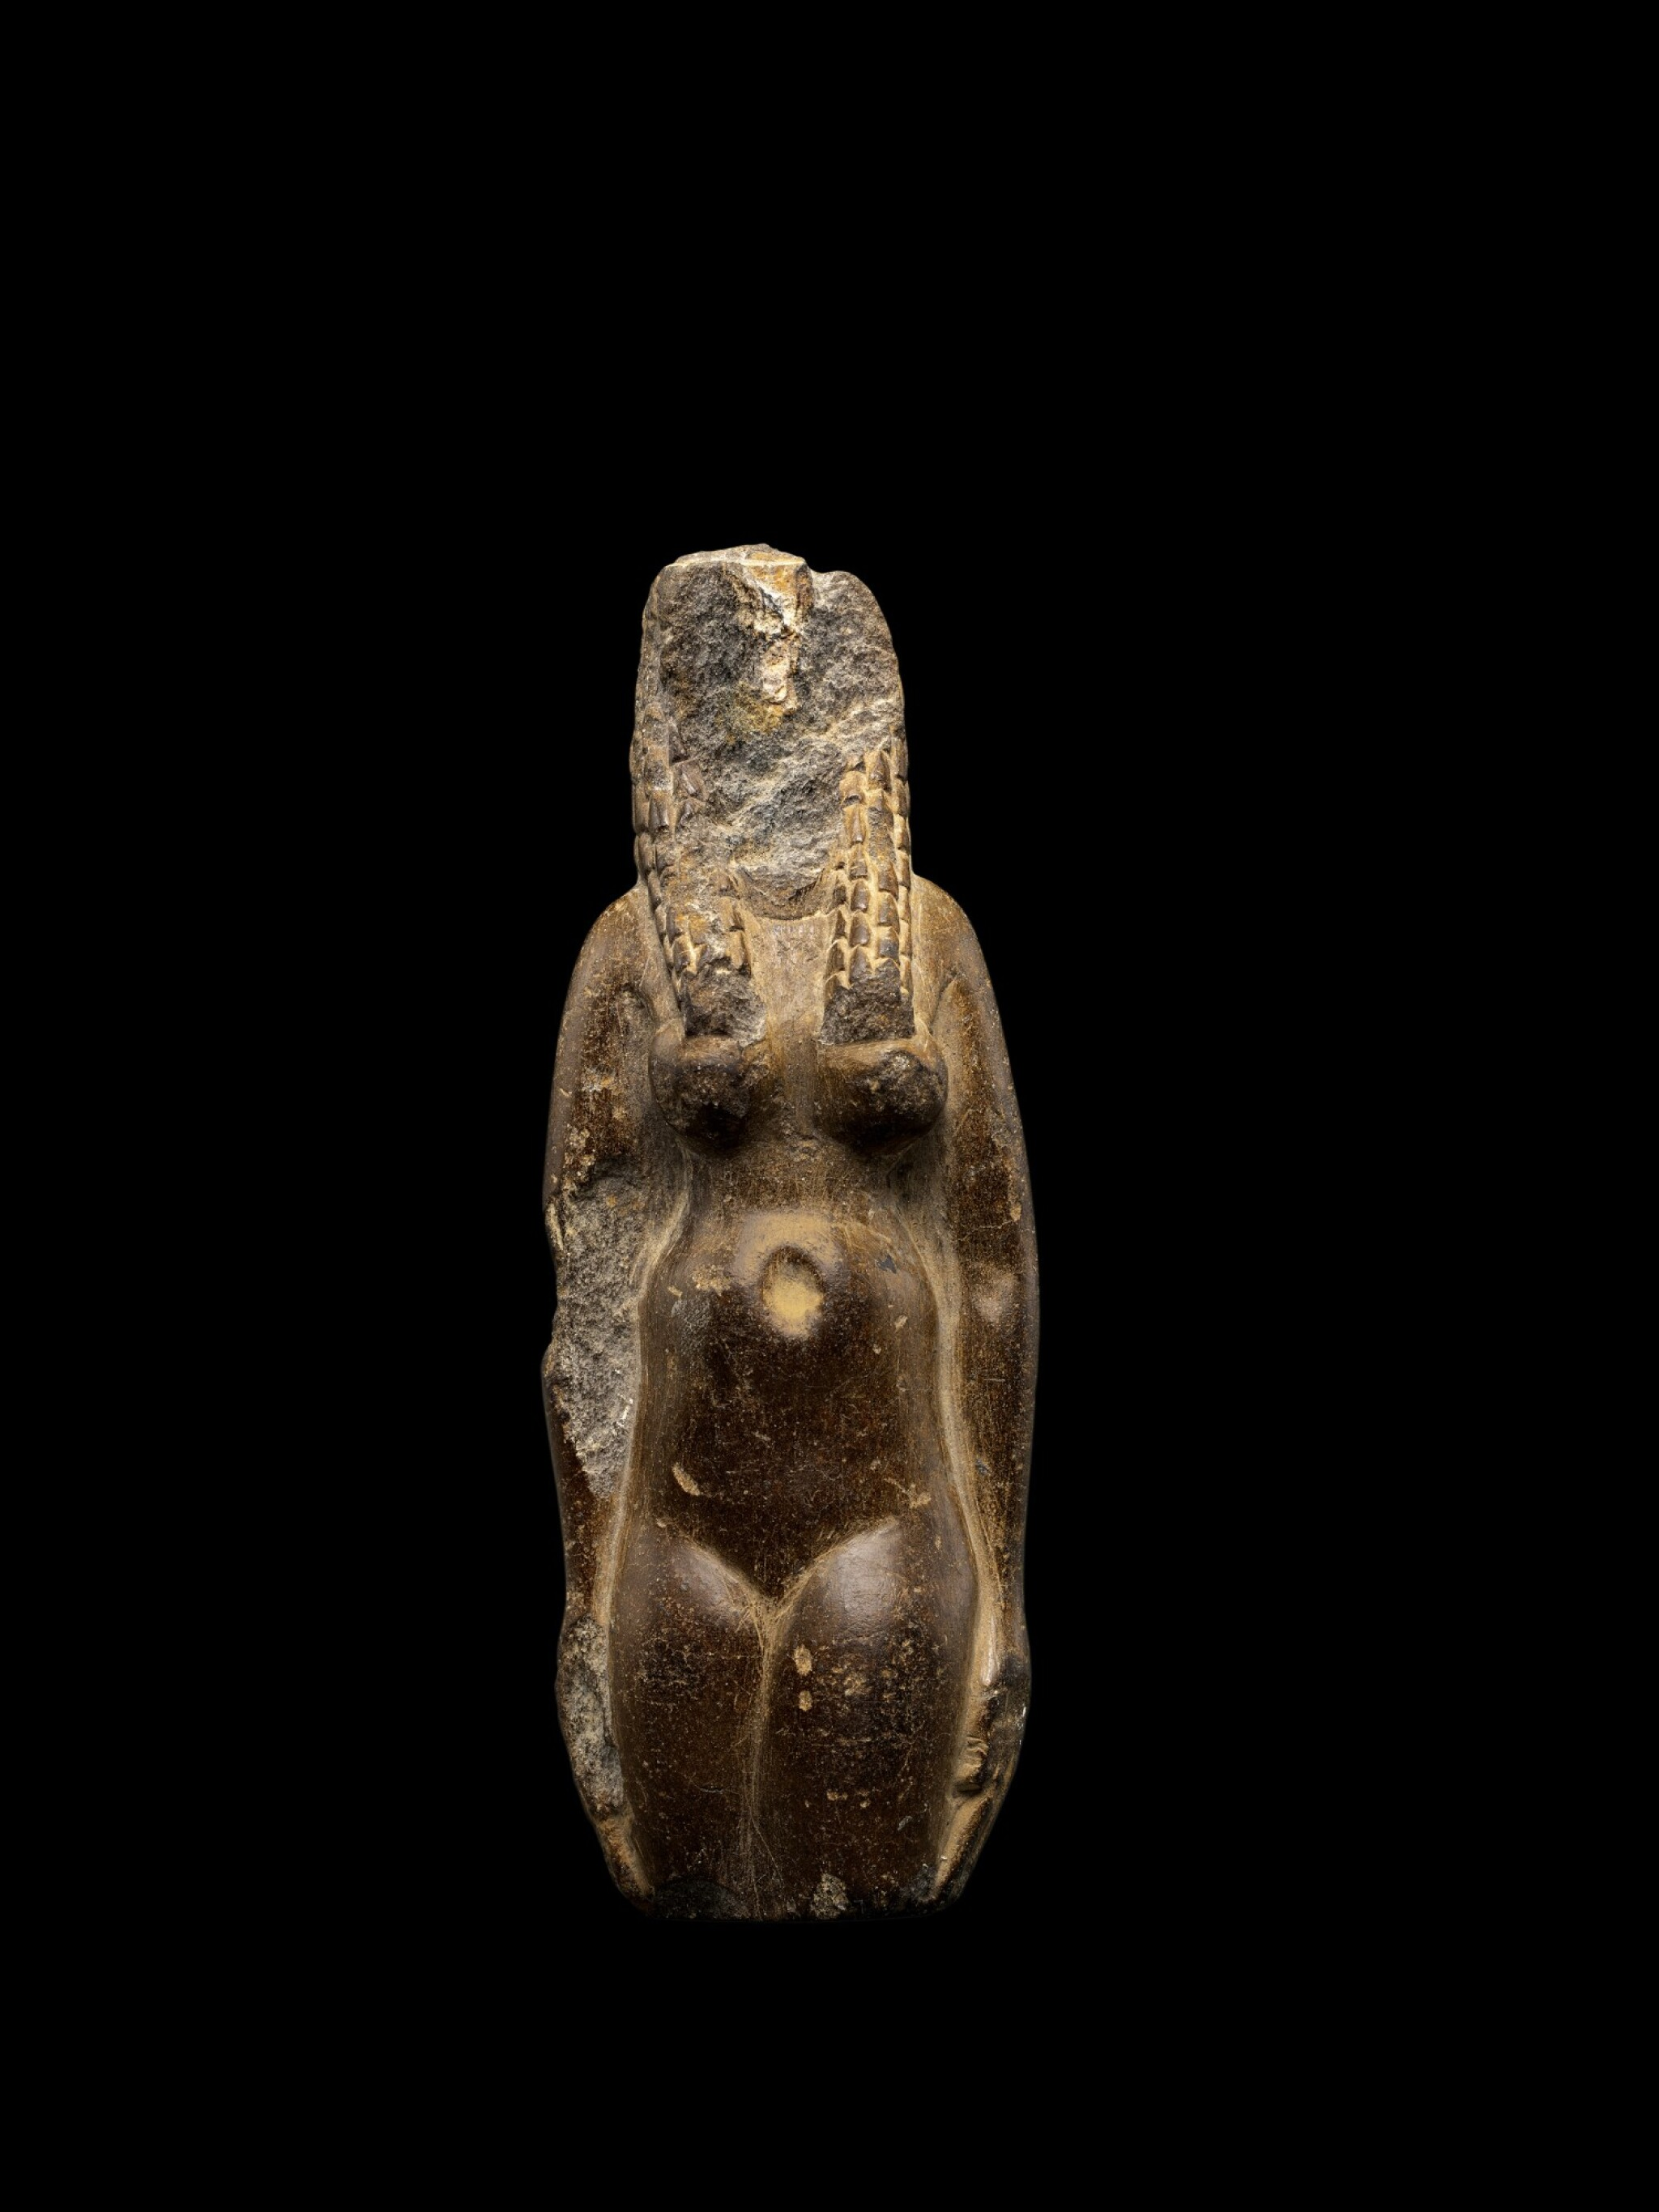 View 1 of Lot 50. An Egyptian Fragmentary Brown Steatite Figure of Hathor, Ptolemaic Period, 305-30 B.C..